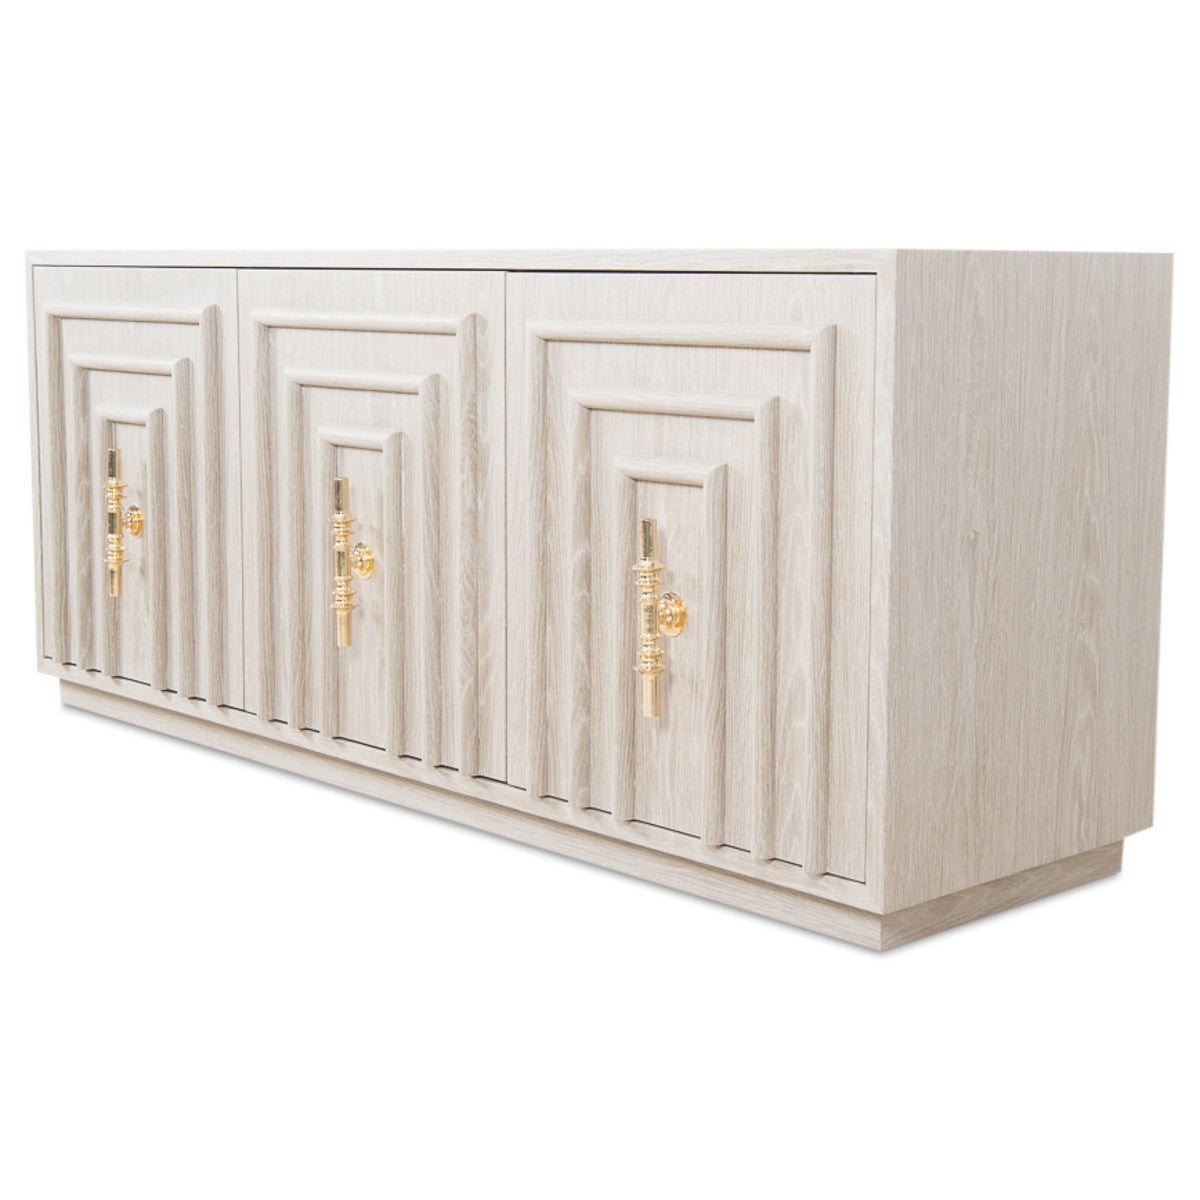 Art Deco 3 Door Credenza in Light Oak - ModShop1.com